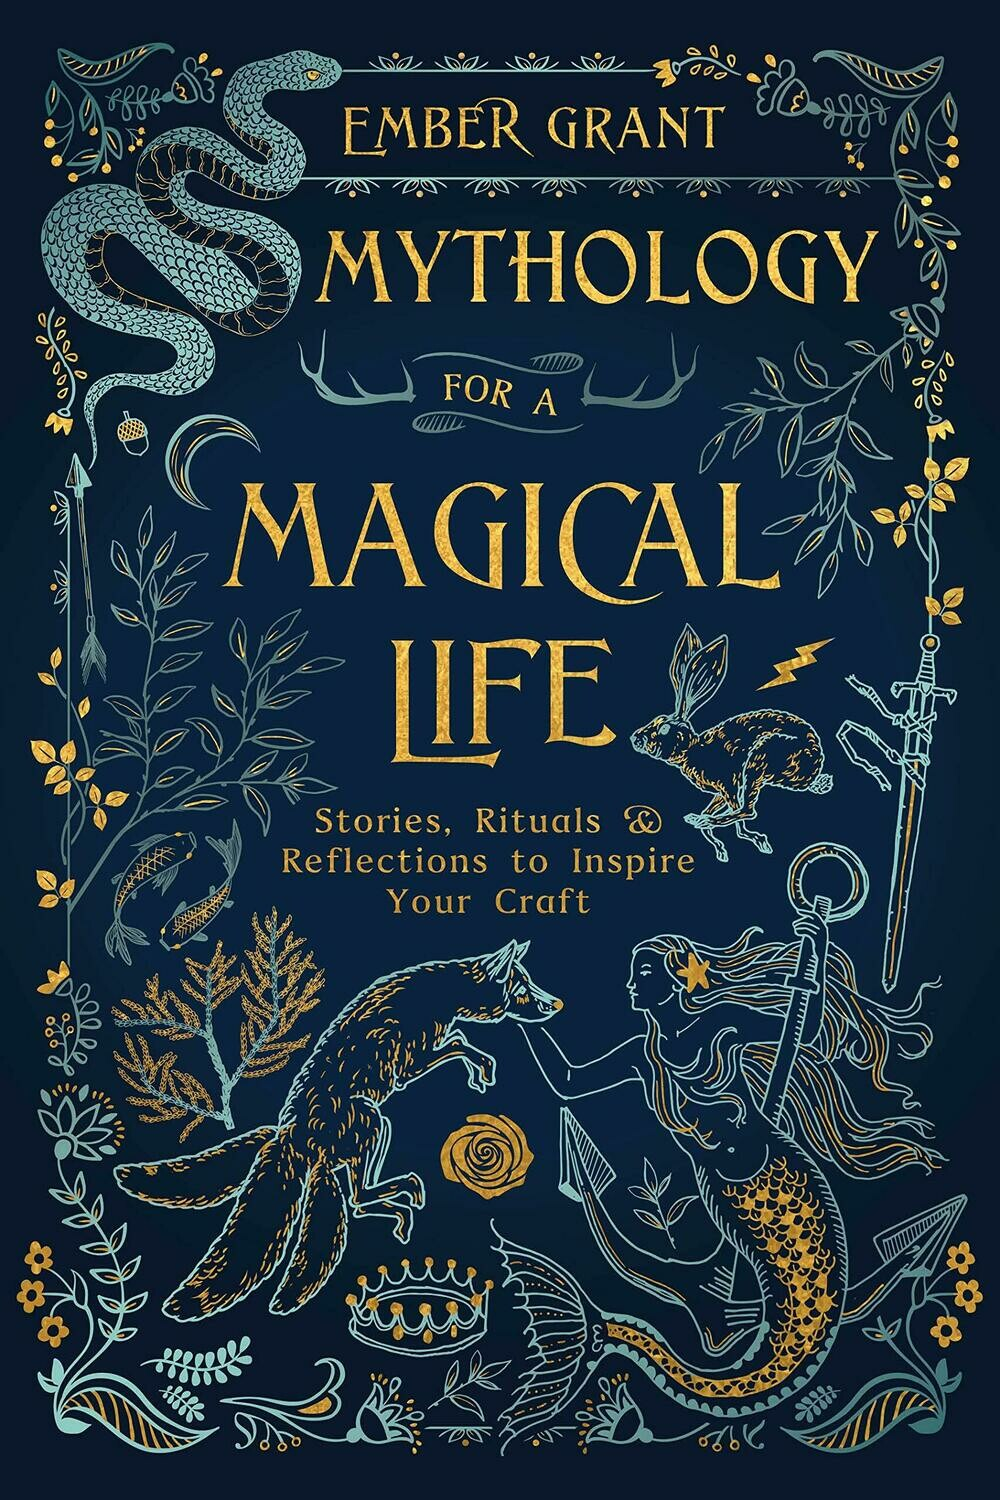 Mythology For A Magical Life by Ember Grant